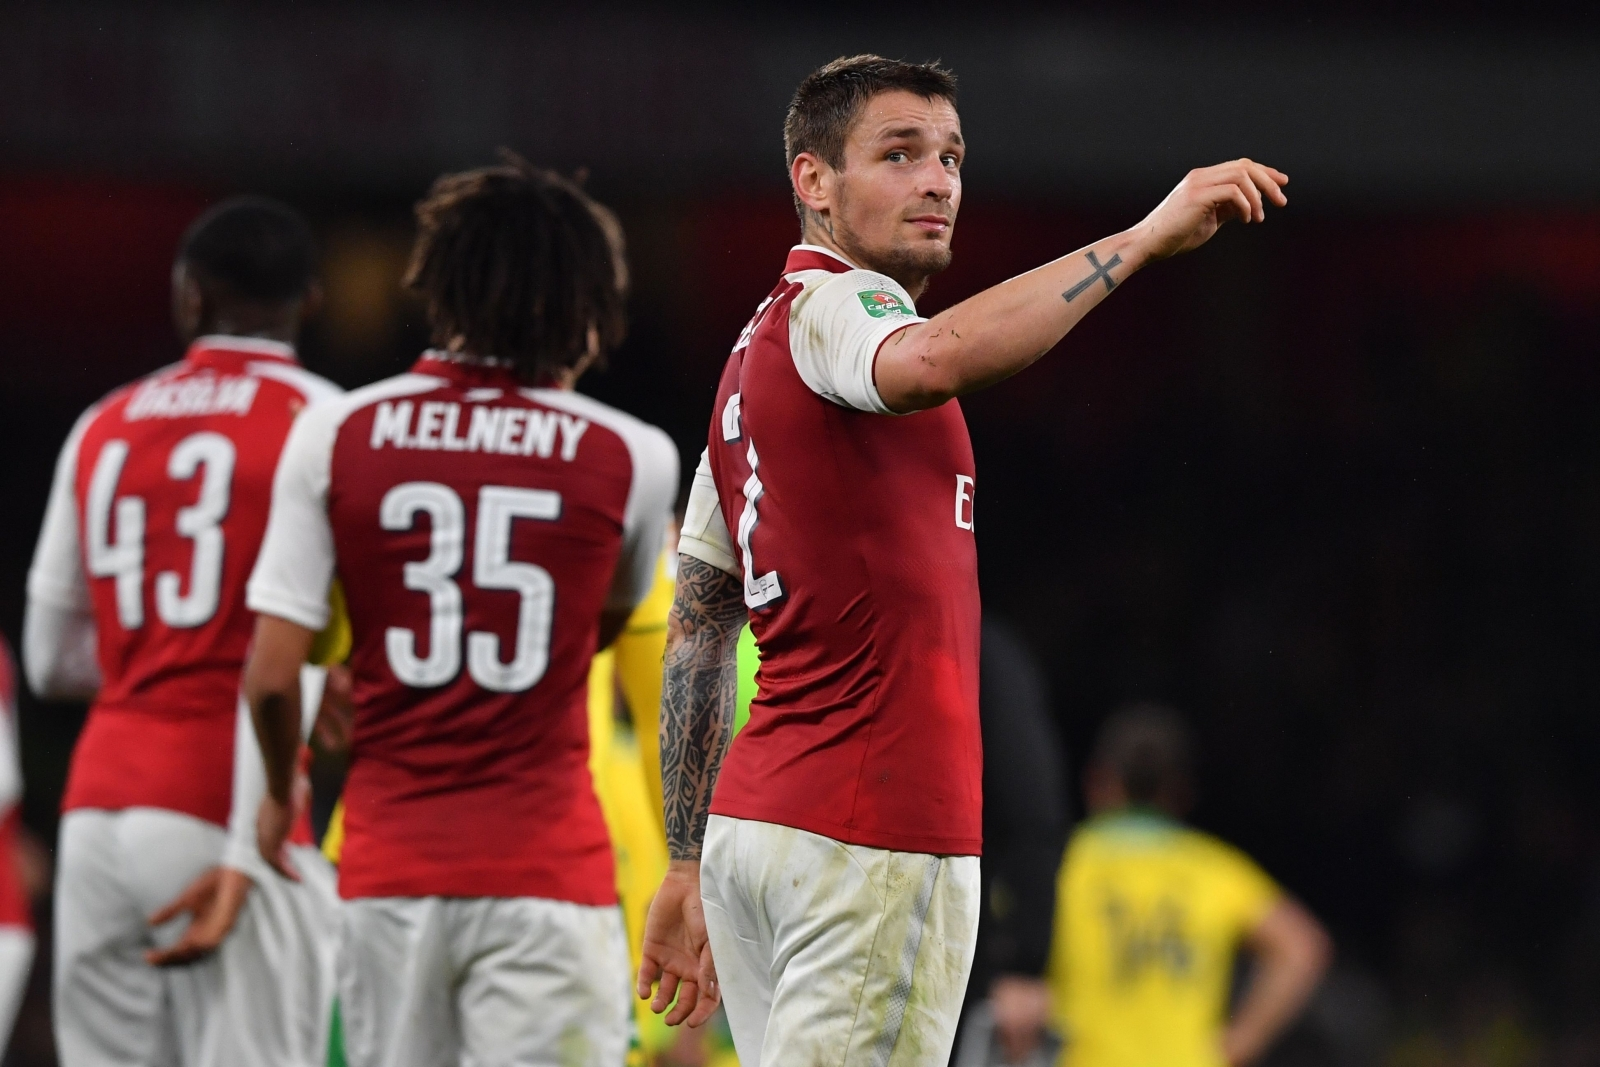 Europa League: Arsenal Advance, Everton Dumped